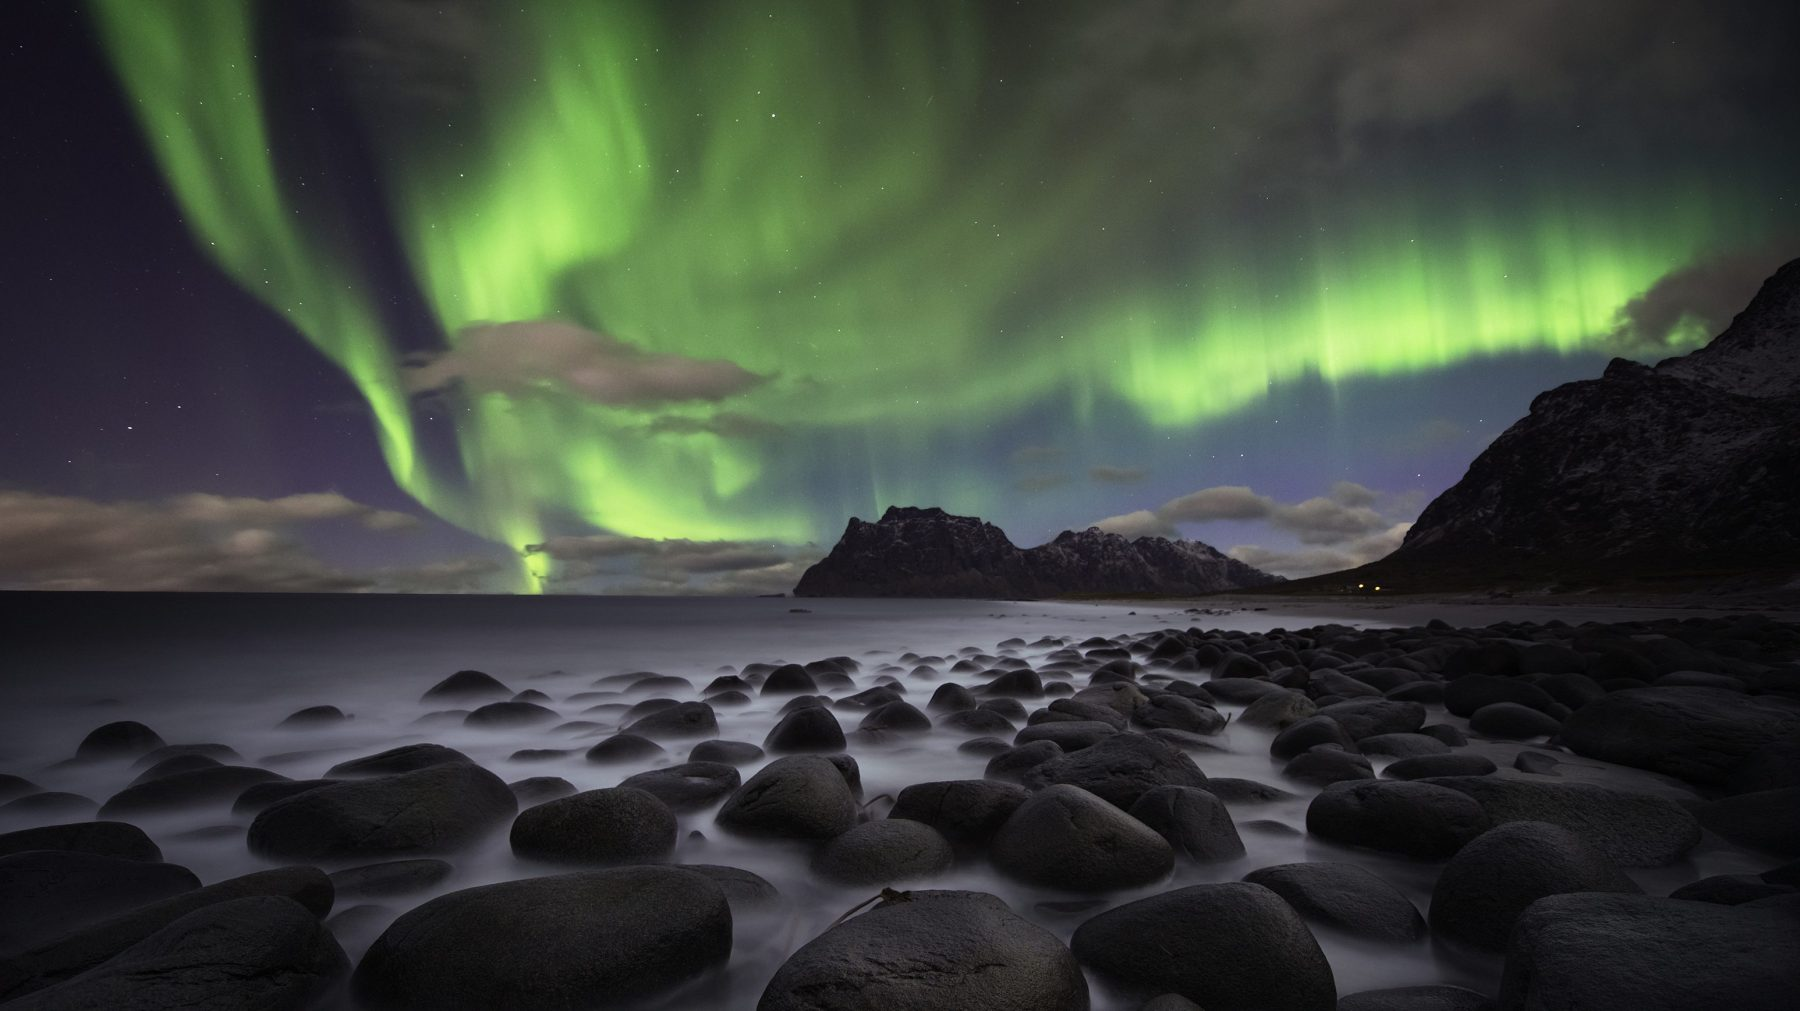 Norway at night with the beautiful Aurora borealis. (Getty Images)